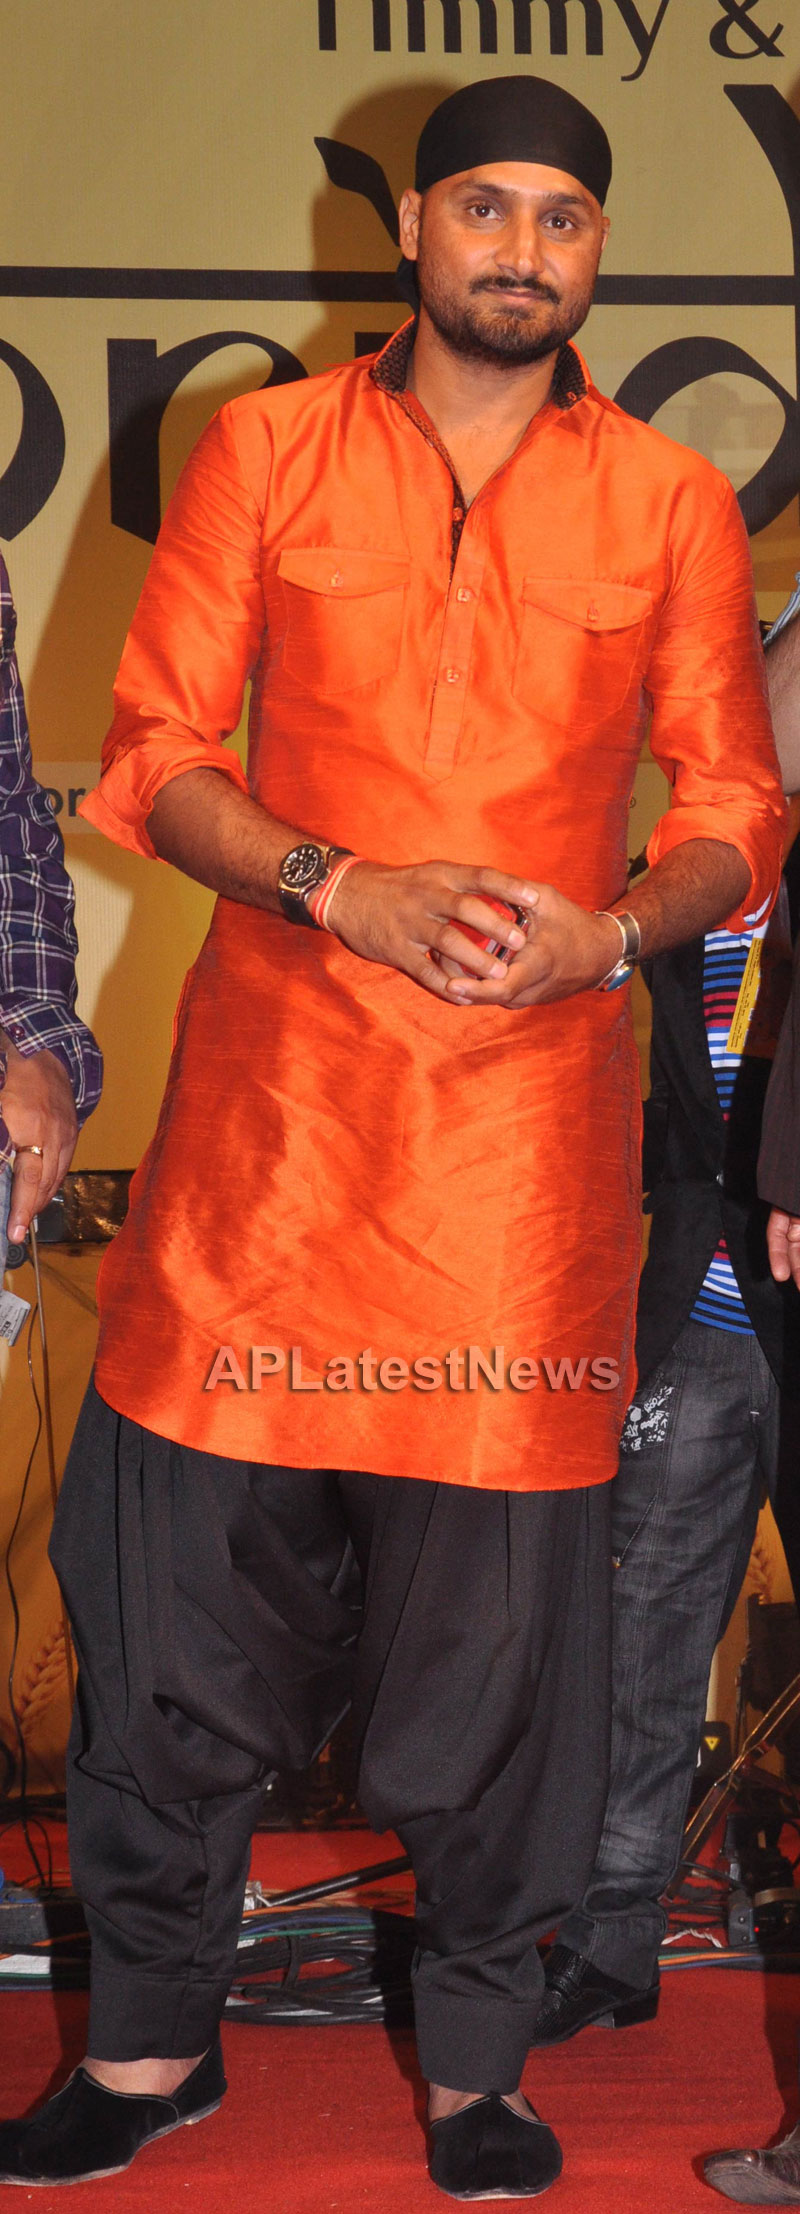 Bollywood Celebrating Lohri Di Raat in Mumbai - Picture 24